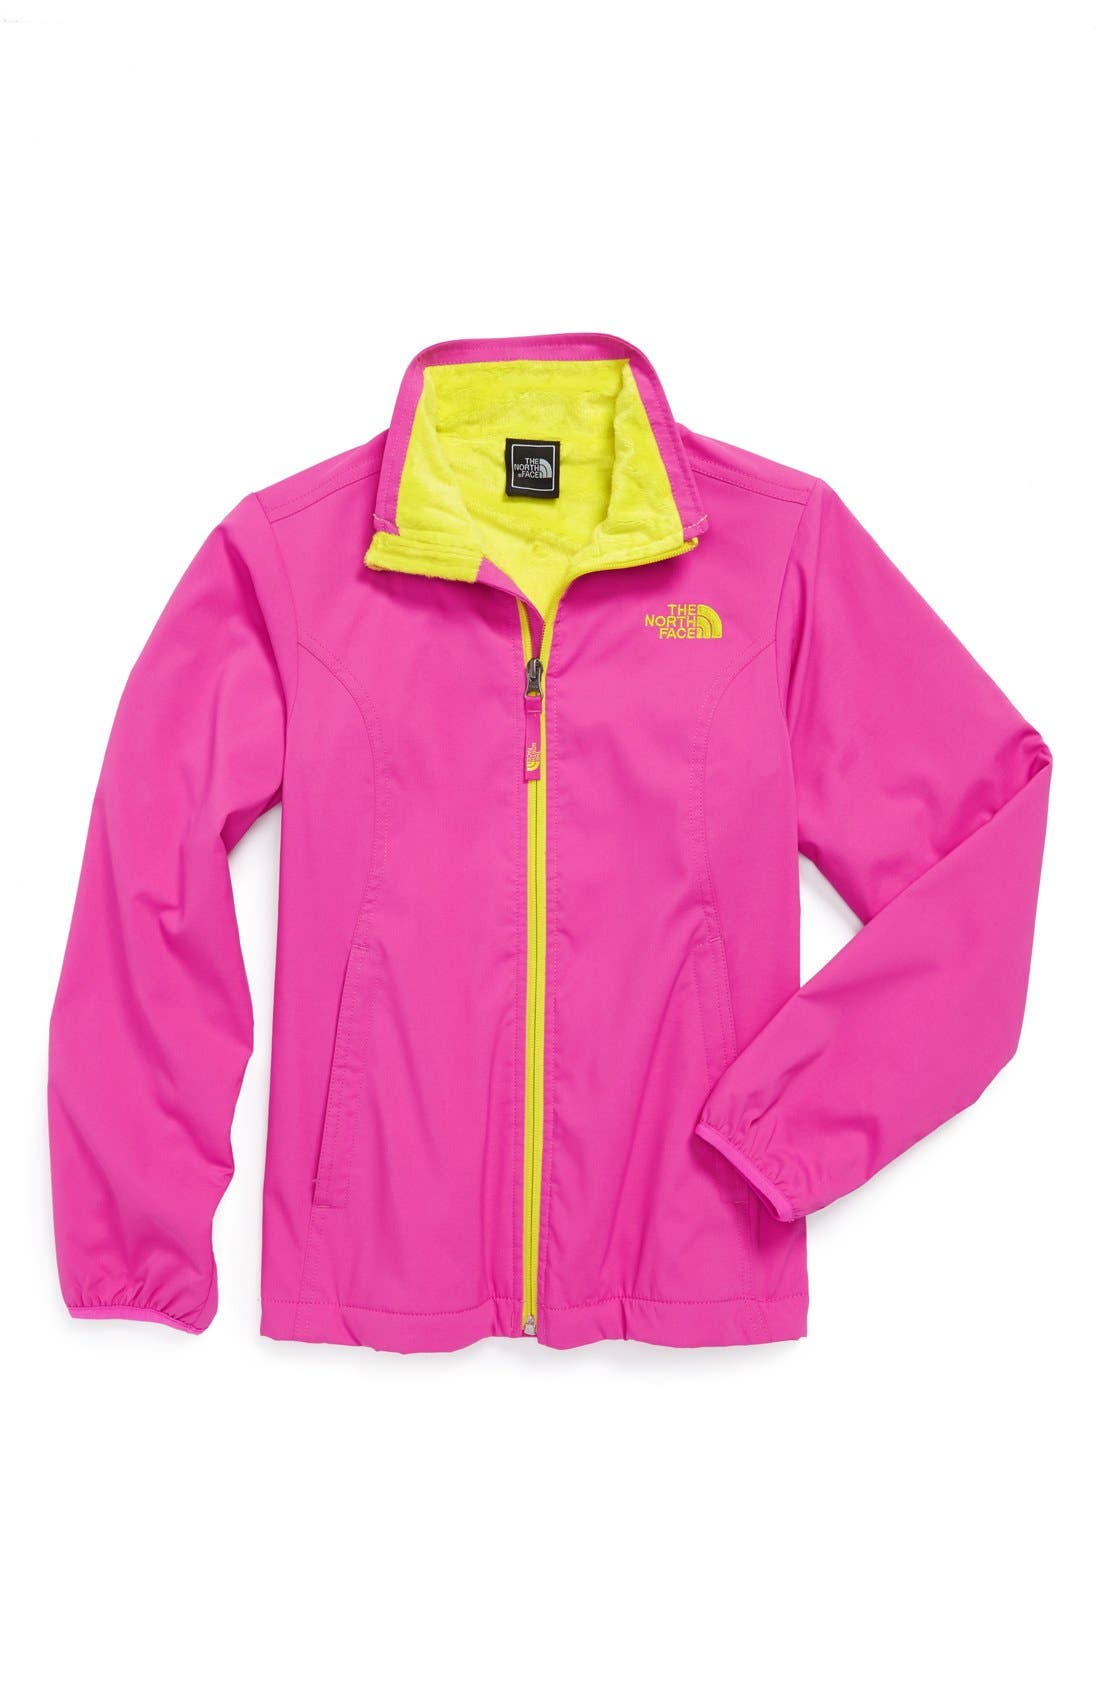 Alternate Image 1 Selected - The North Face 'Mossbud' Jacket (Big Girls)